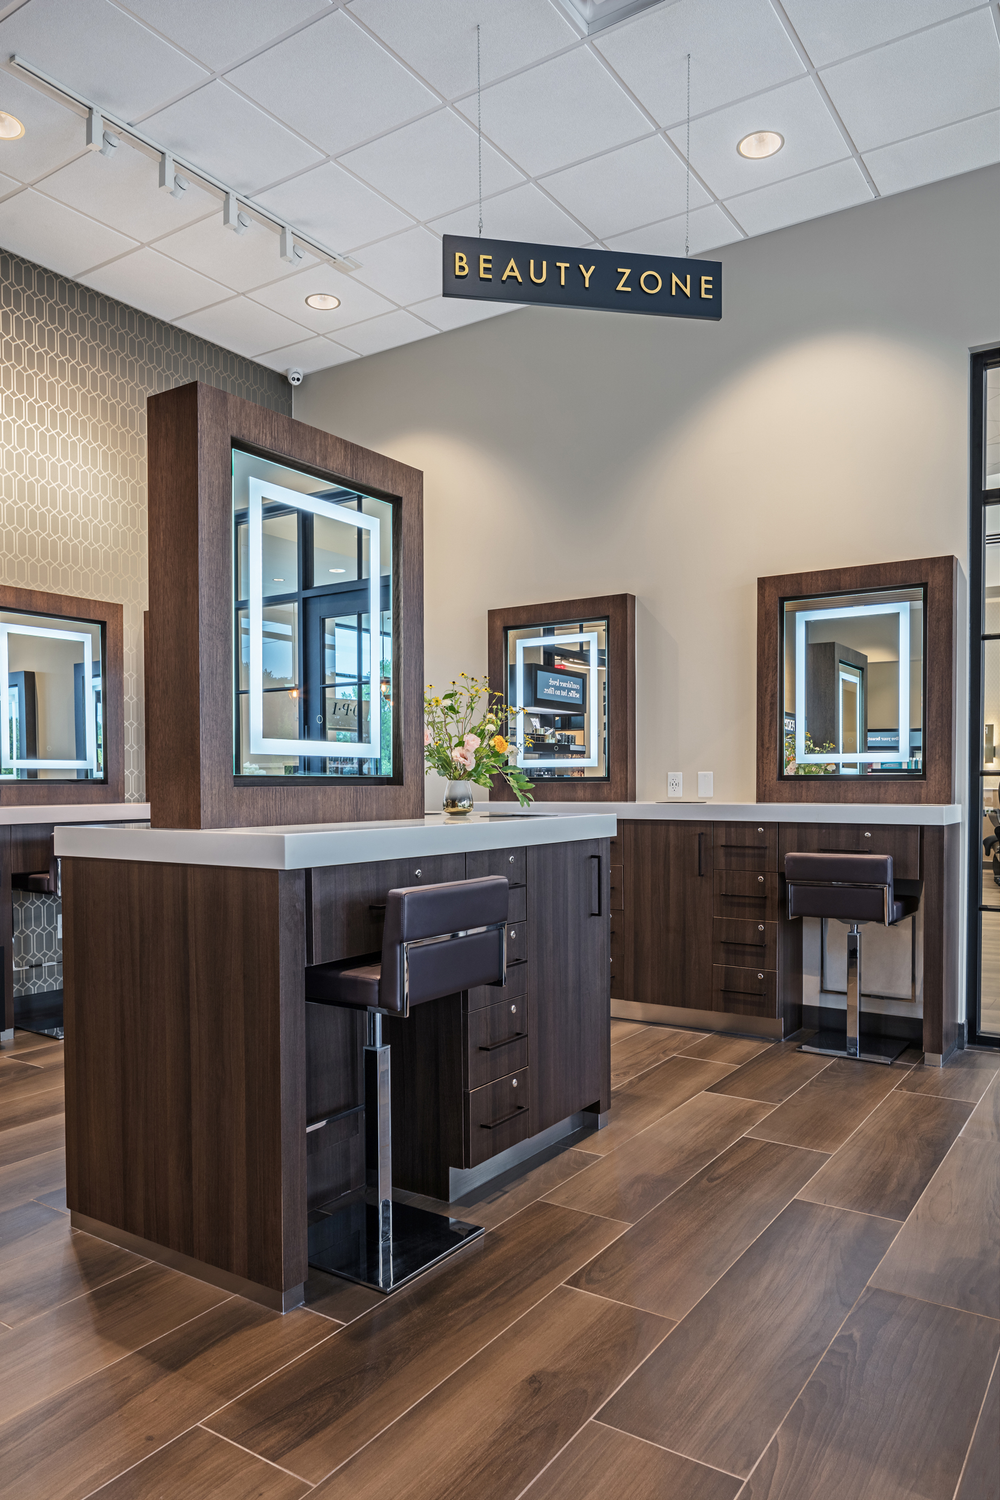 The salon's Beauty Zone invites clients to play with product, and the room frequently hosts client events.